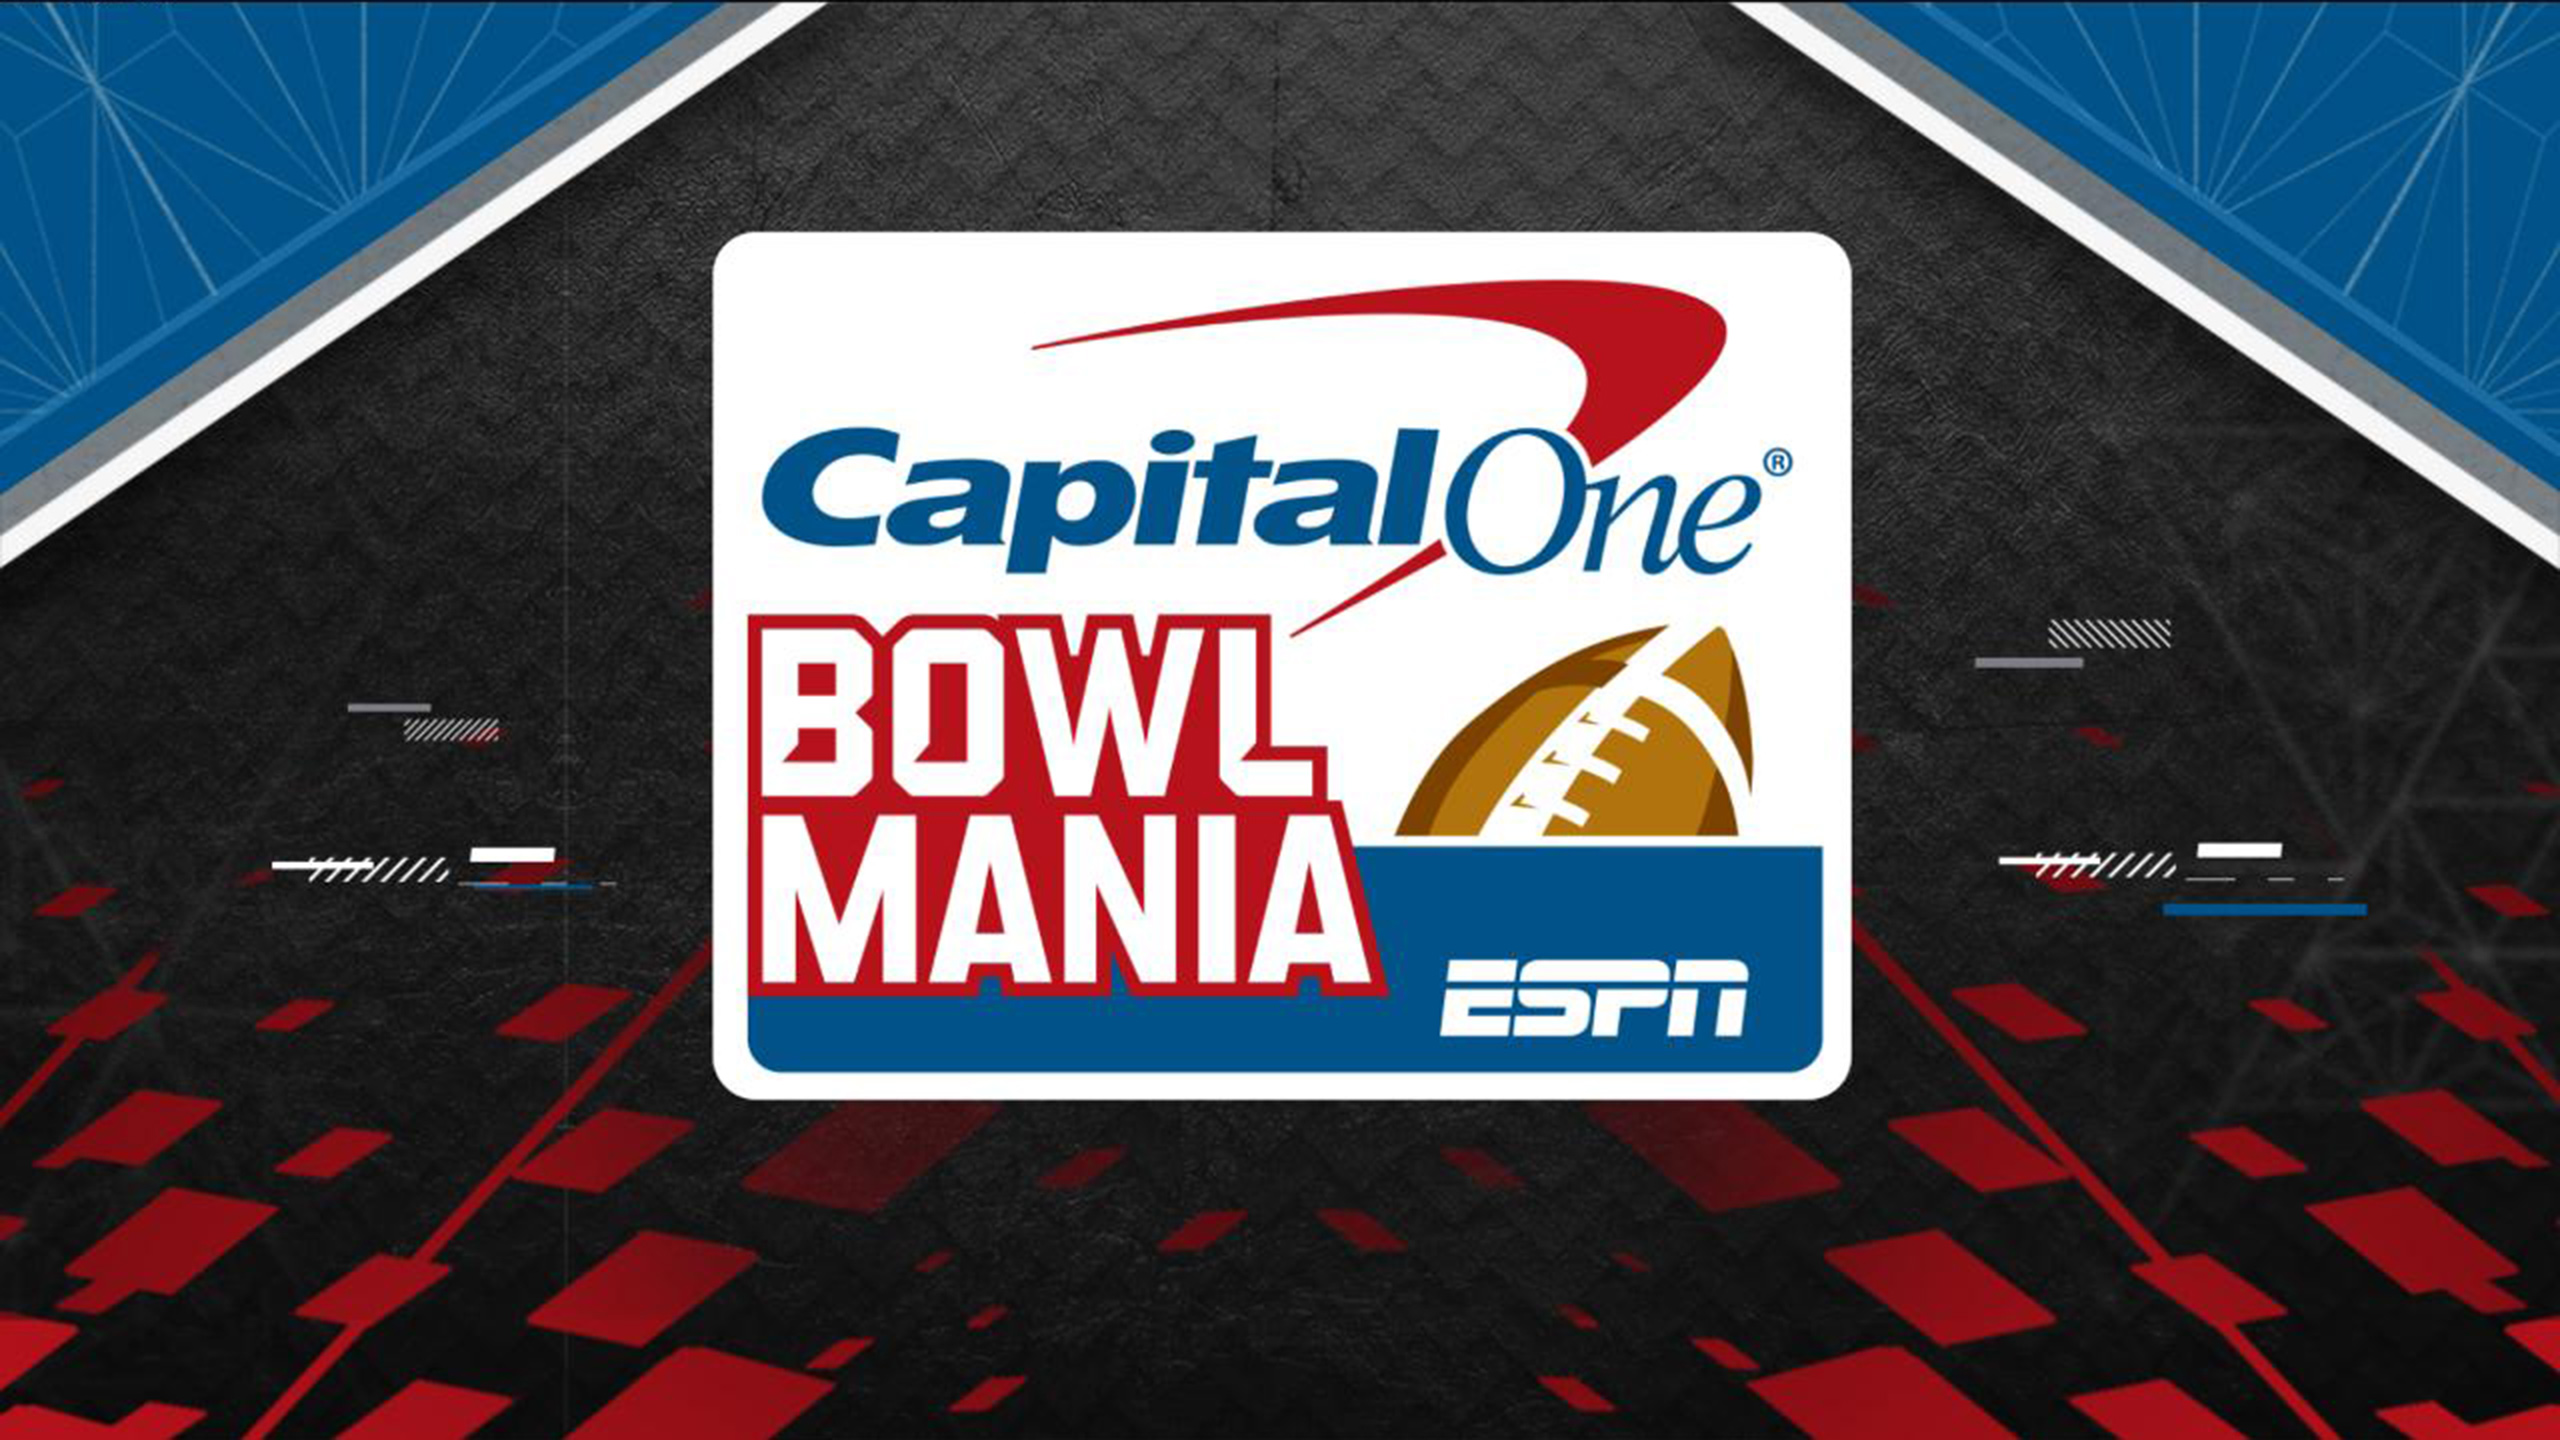 College Football Bowl Special